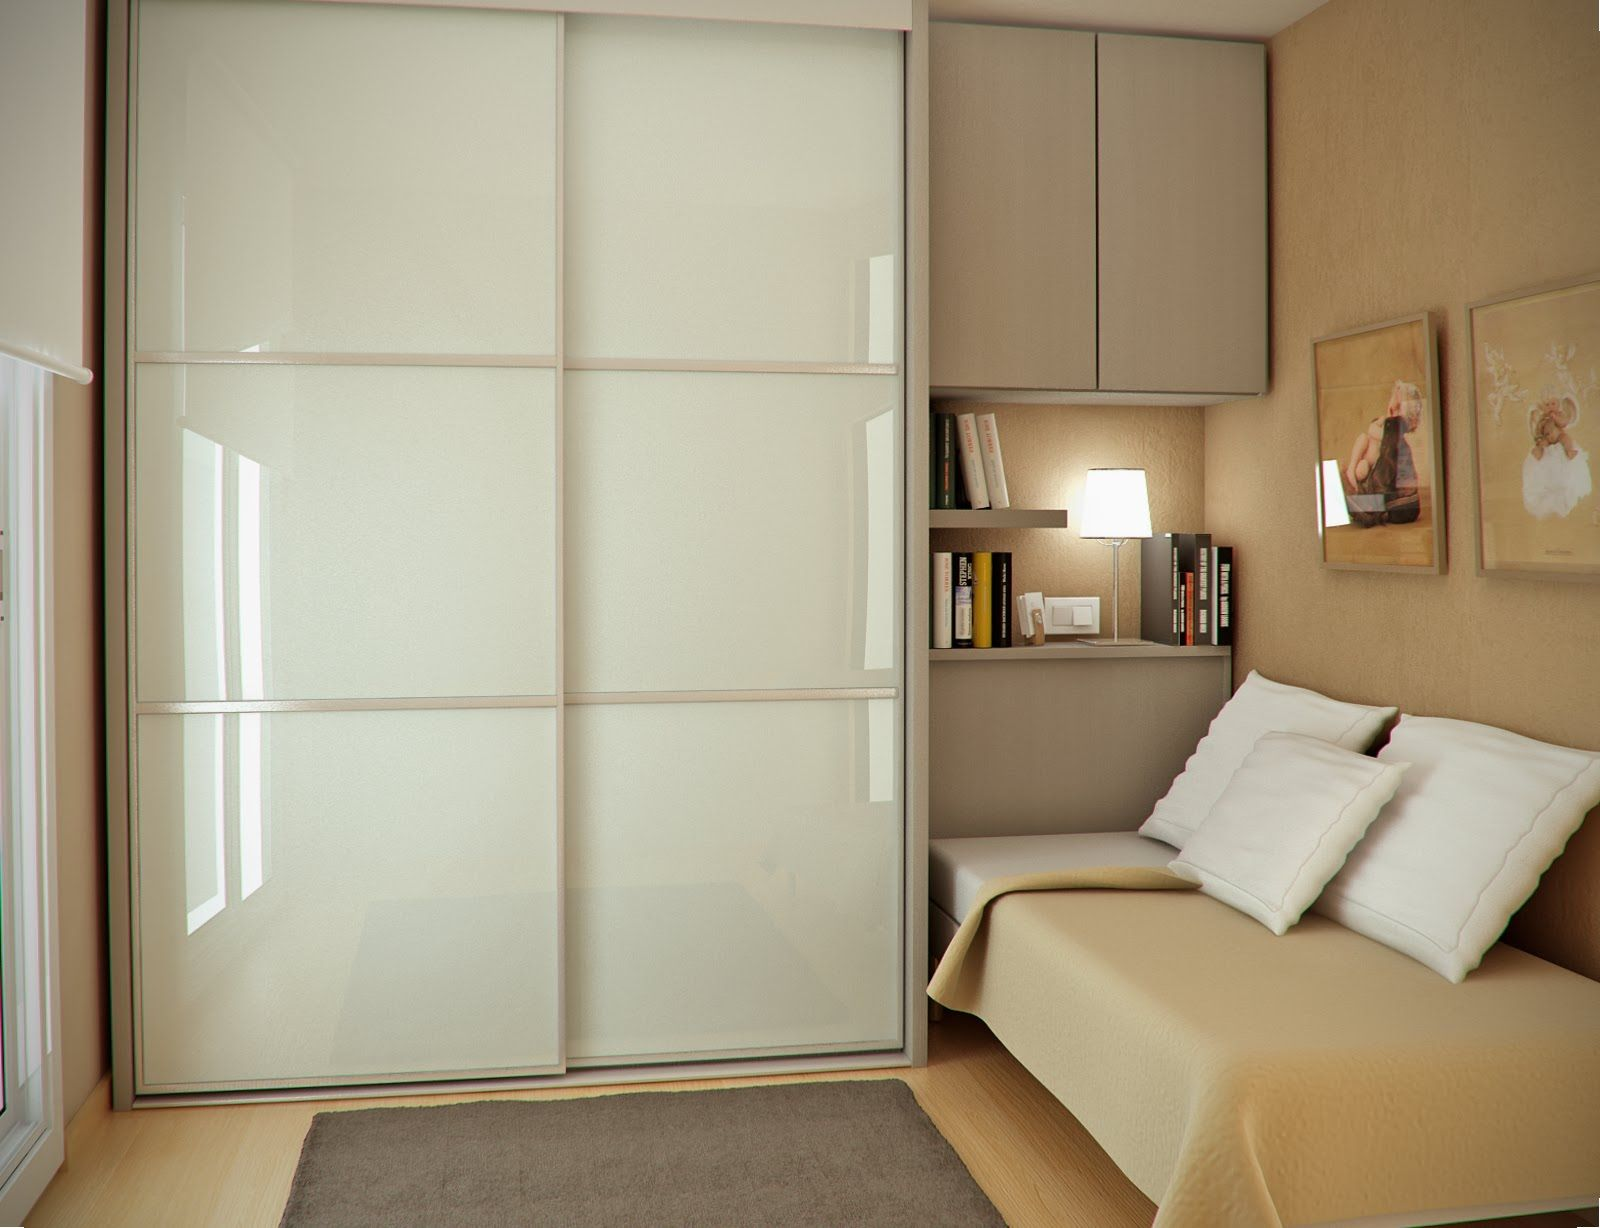 Cabinet Ideas For Small Bedroom Small Bedroom